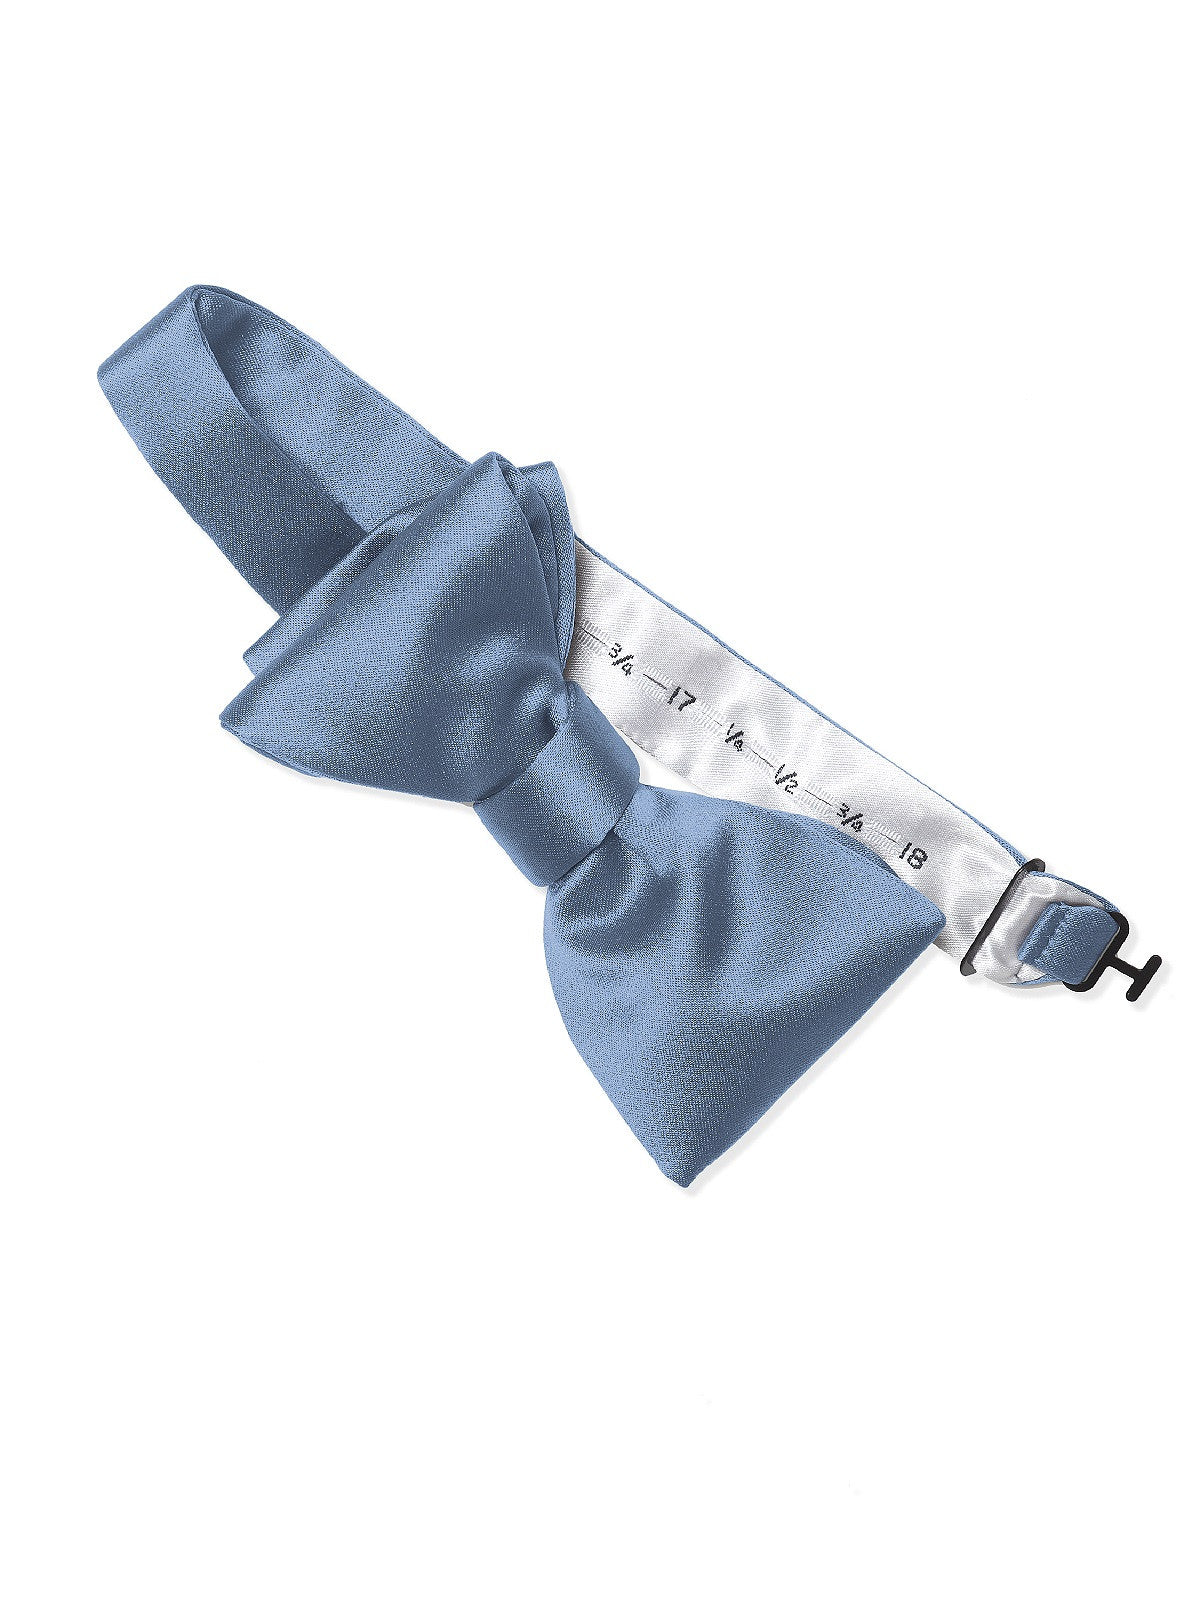 Dessy Windsor Blue Matte Satin Bow Tie